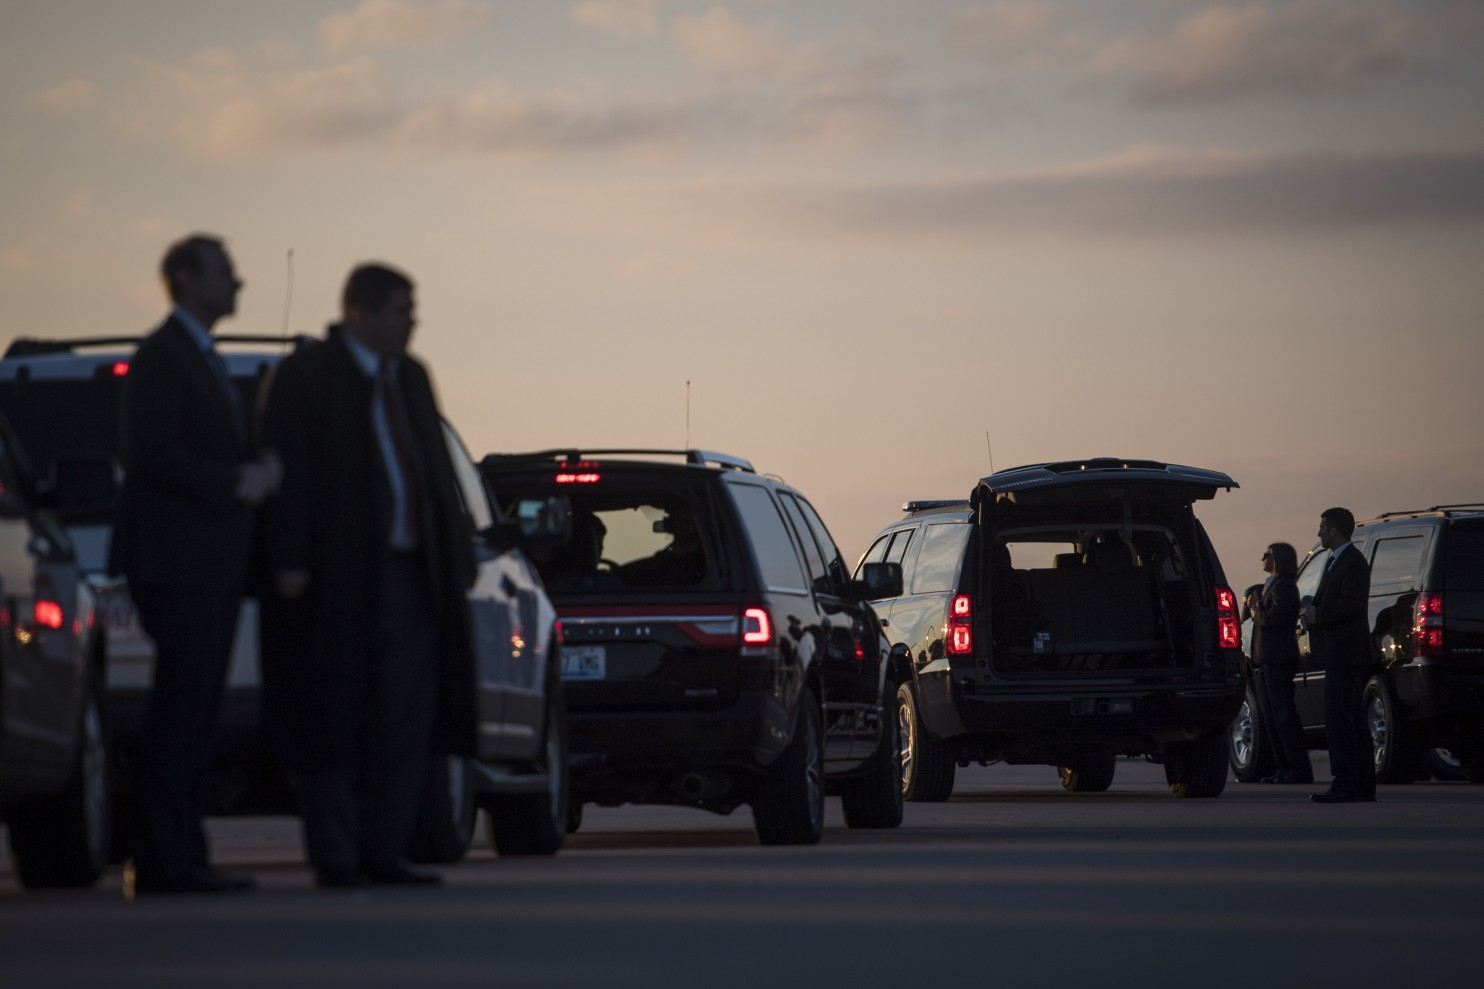 Secret Service members wait with a motorcade before President-elect Donald Trump disembarks his plane in Hebron, Ky., on Dec. 1, 2016. (Jabin Botsford/The Washington Post).